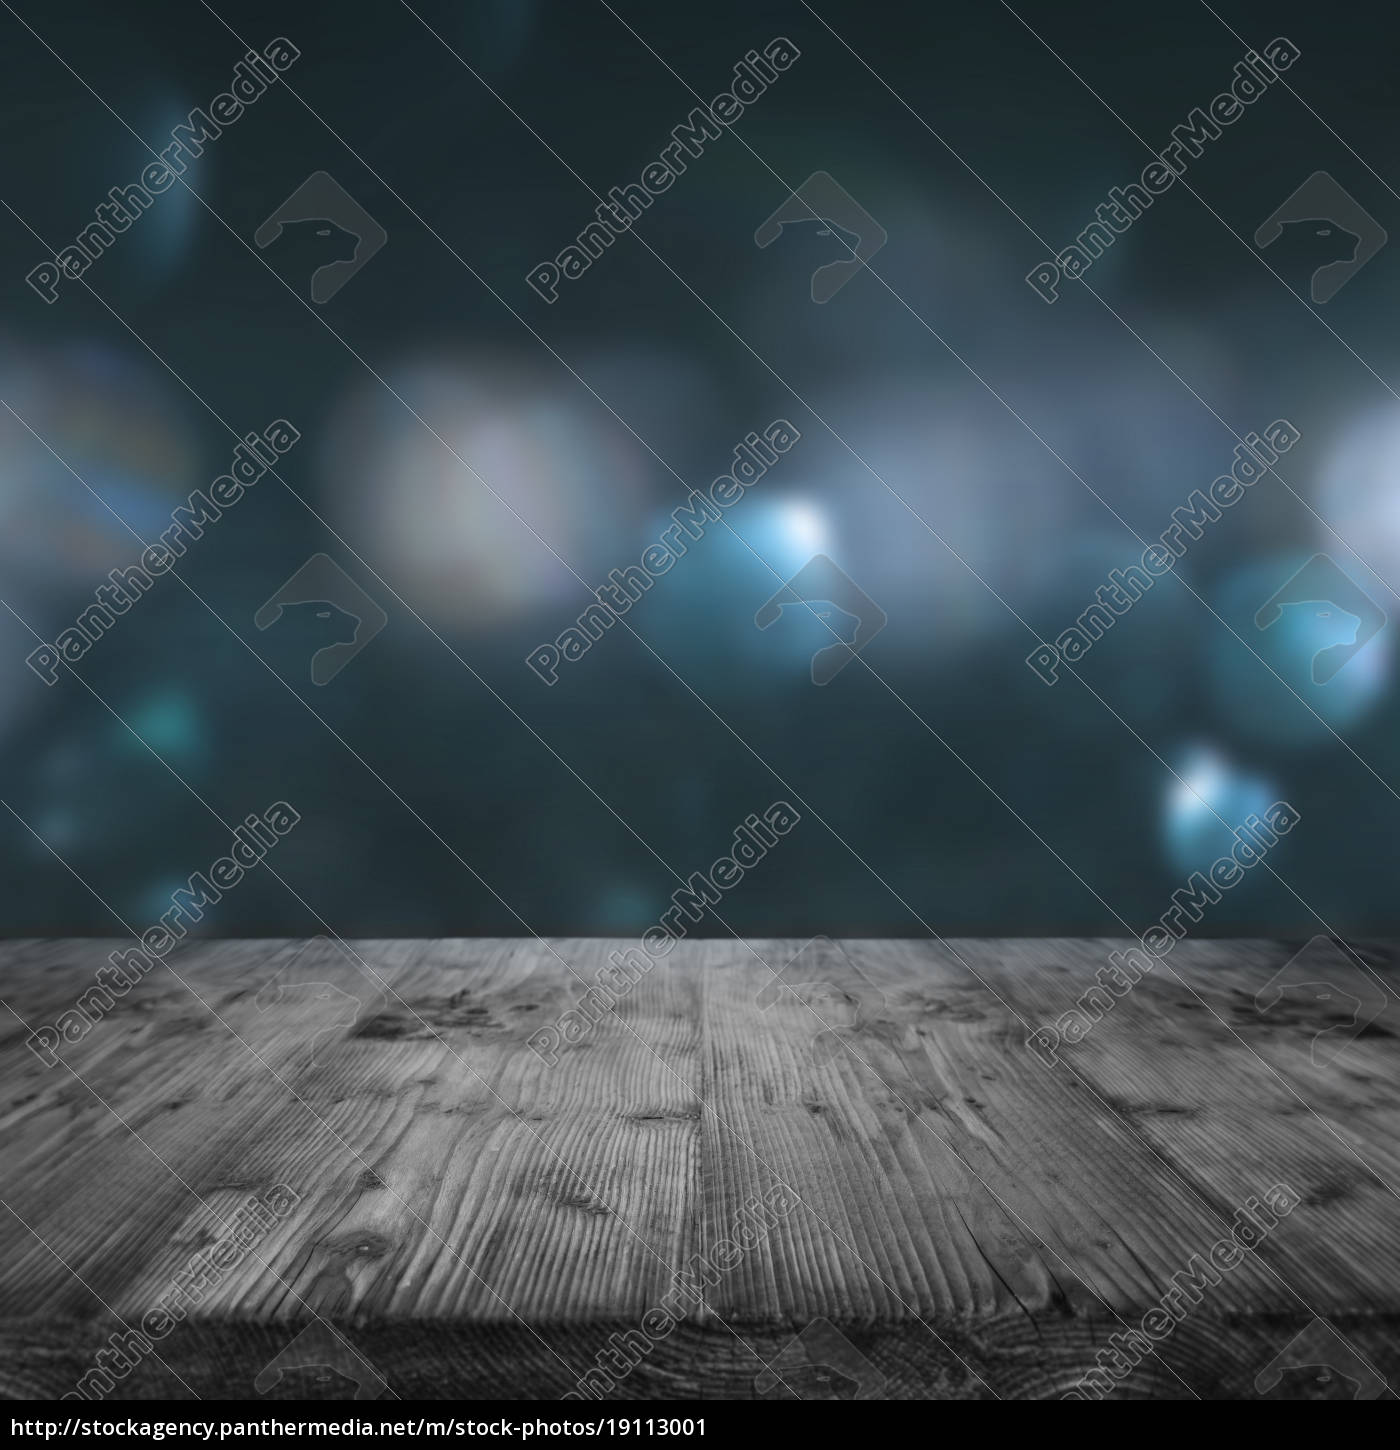 background, for, festive, occasions, in, dark - 19113001